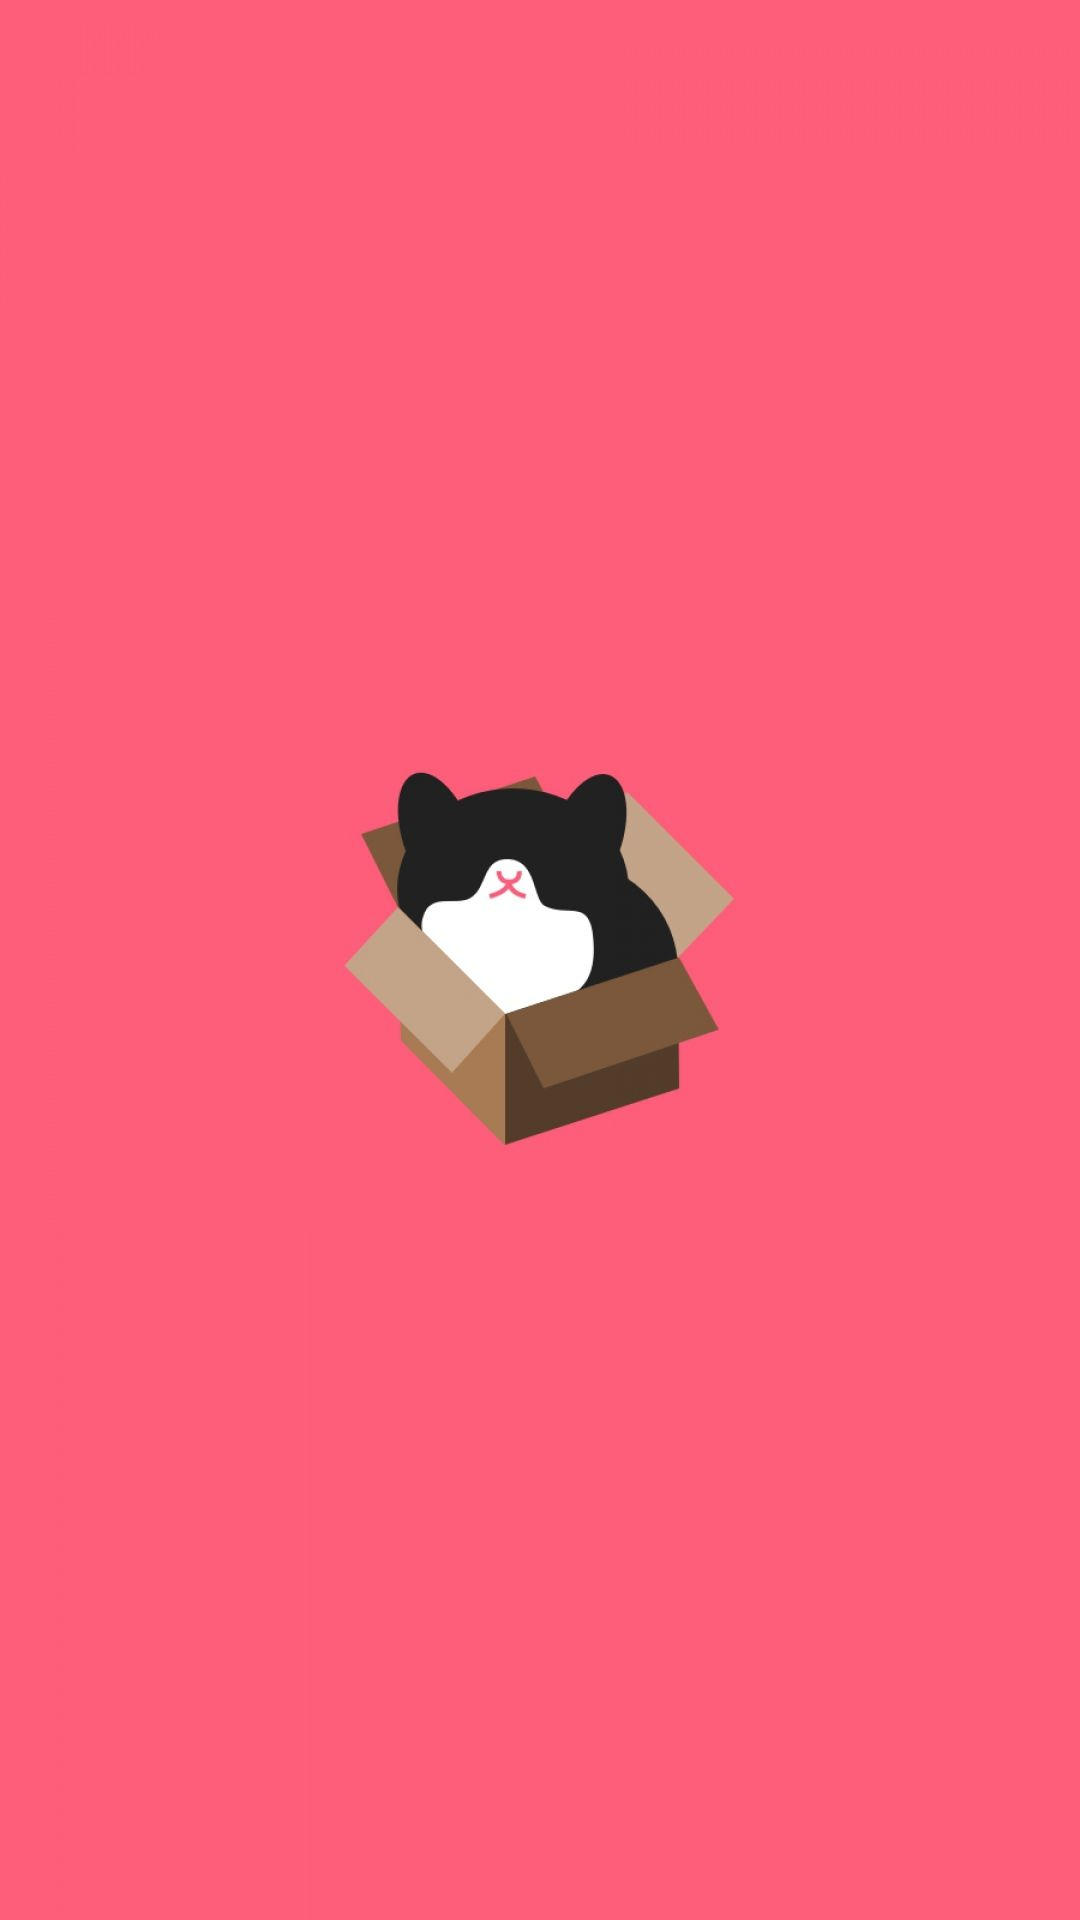 AuBergewohnlich Kitty In A Box / Find More #Minimalistic #iPhone U0026 #Android #Wallpapers